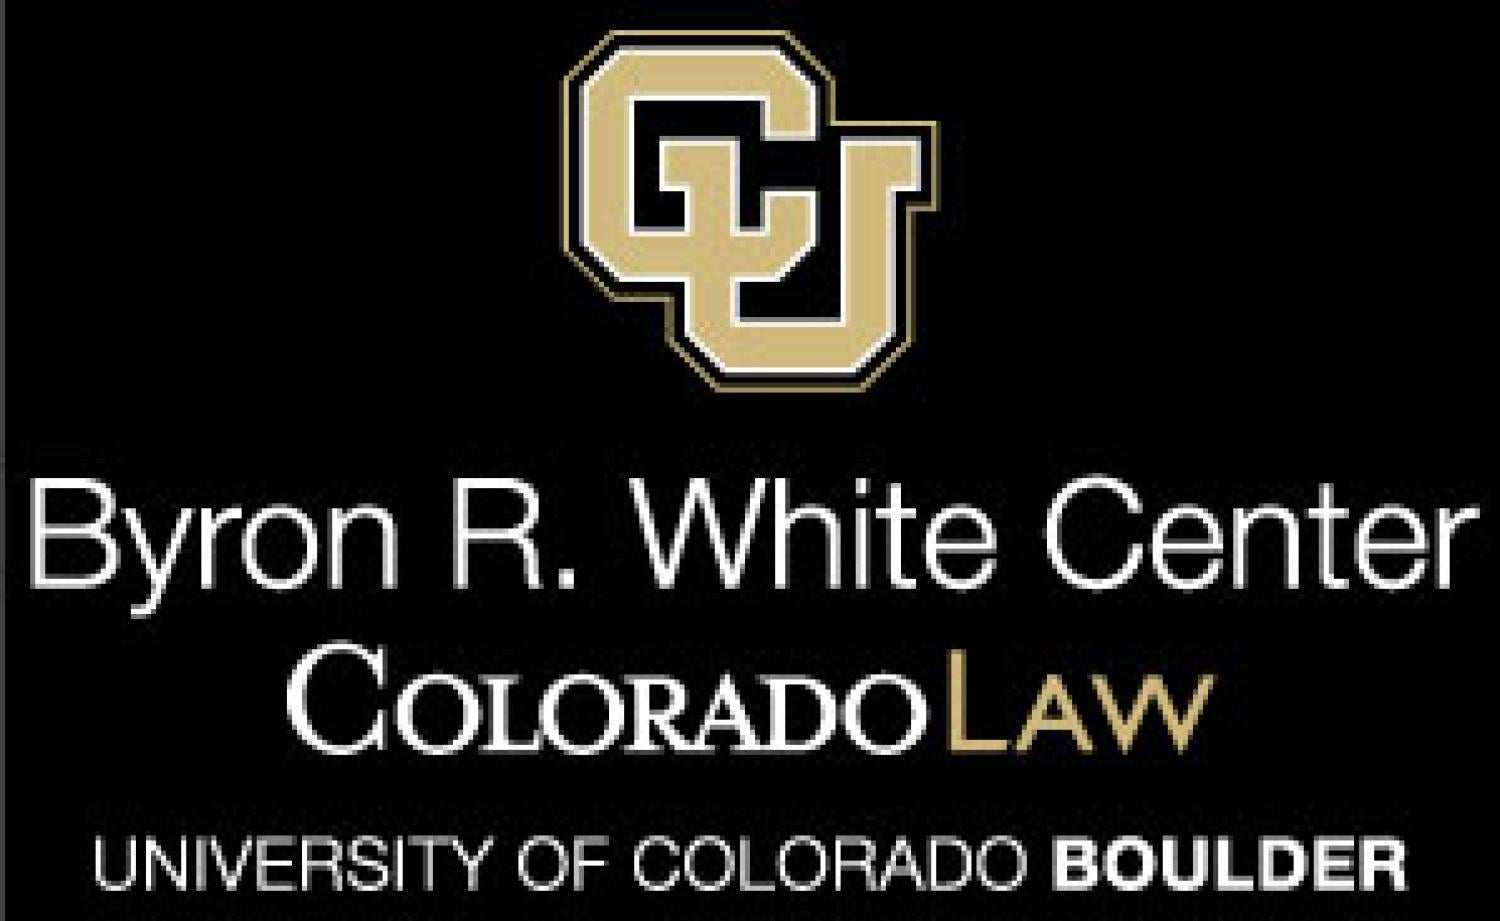 Byron R. White Center ColoradoLaw University of Colorado Boulder